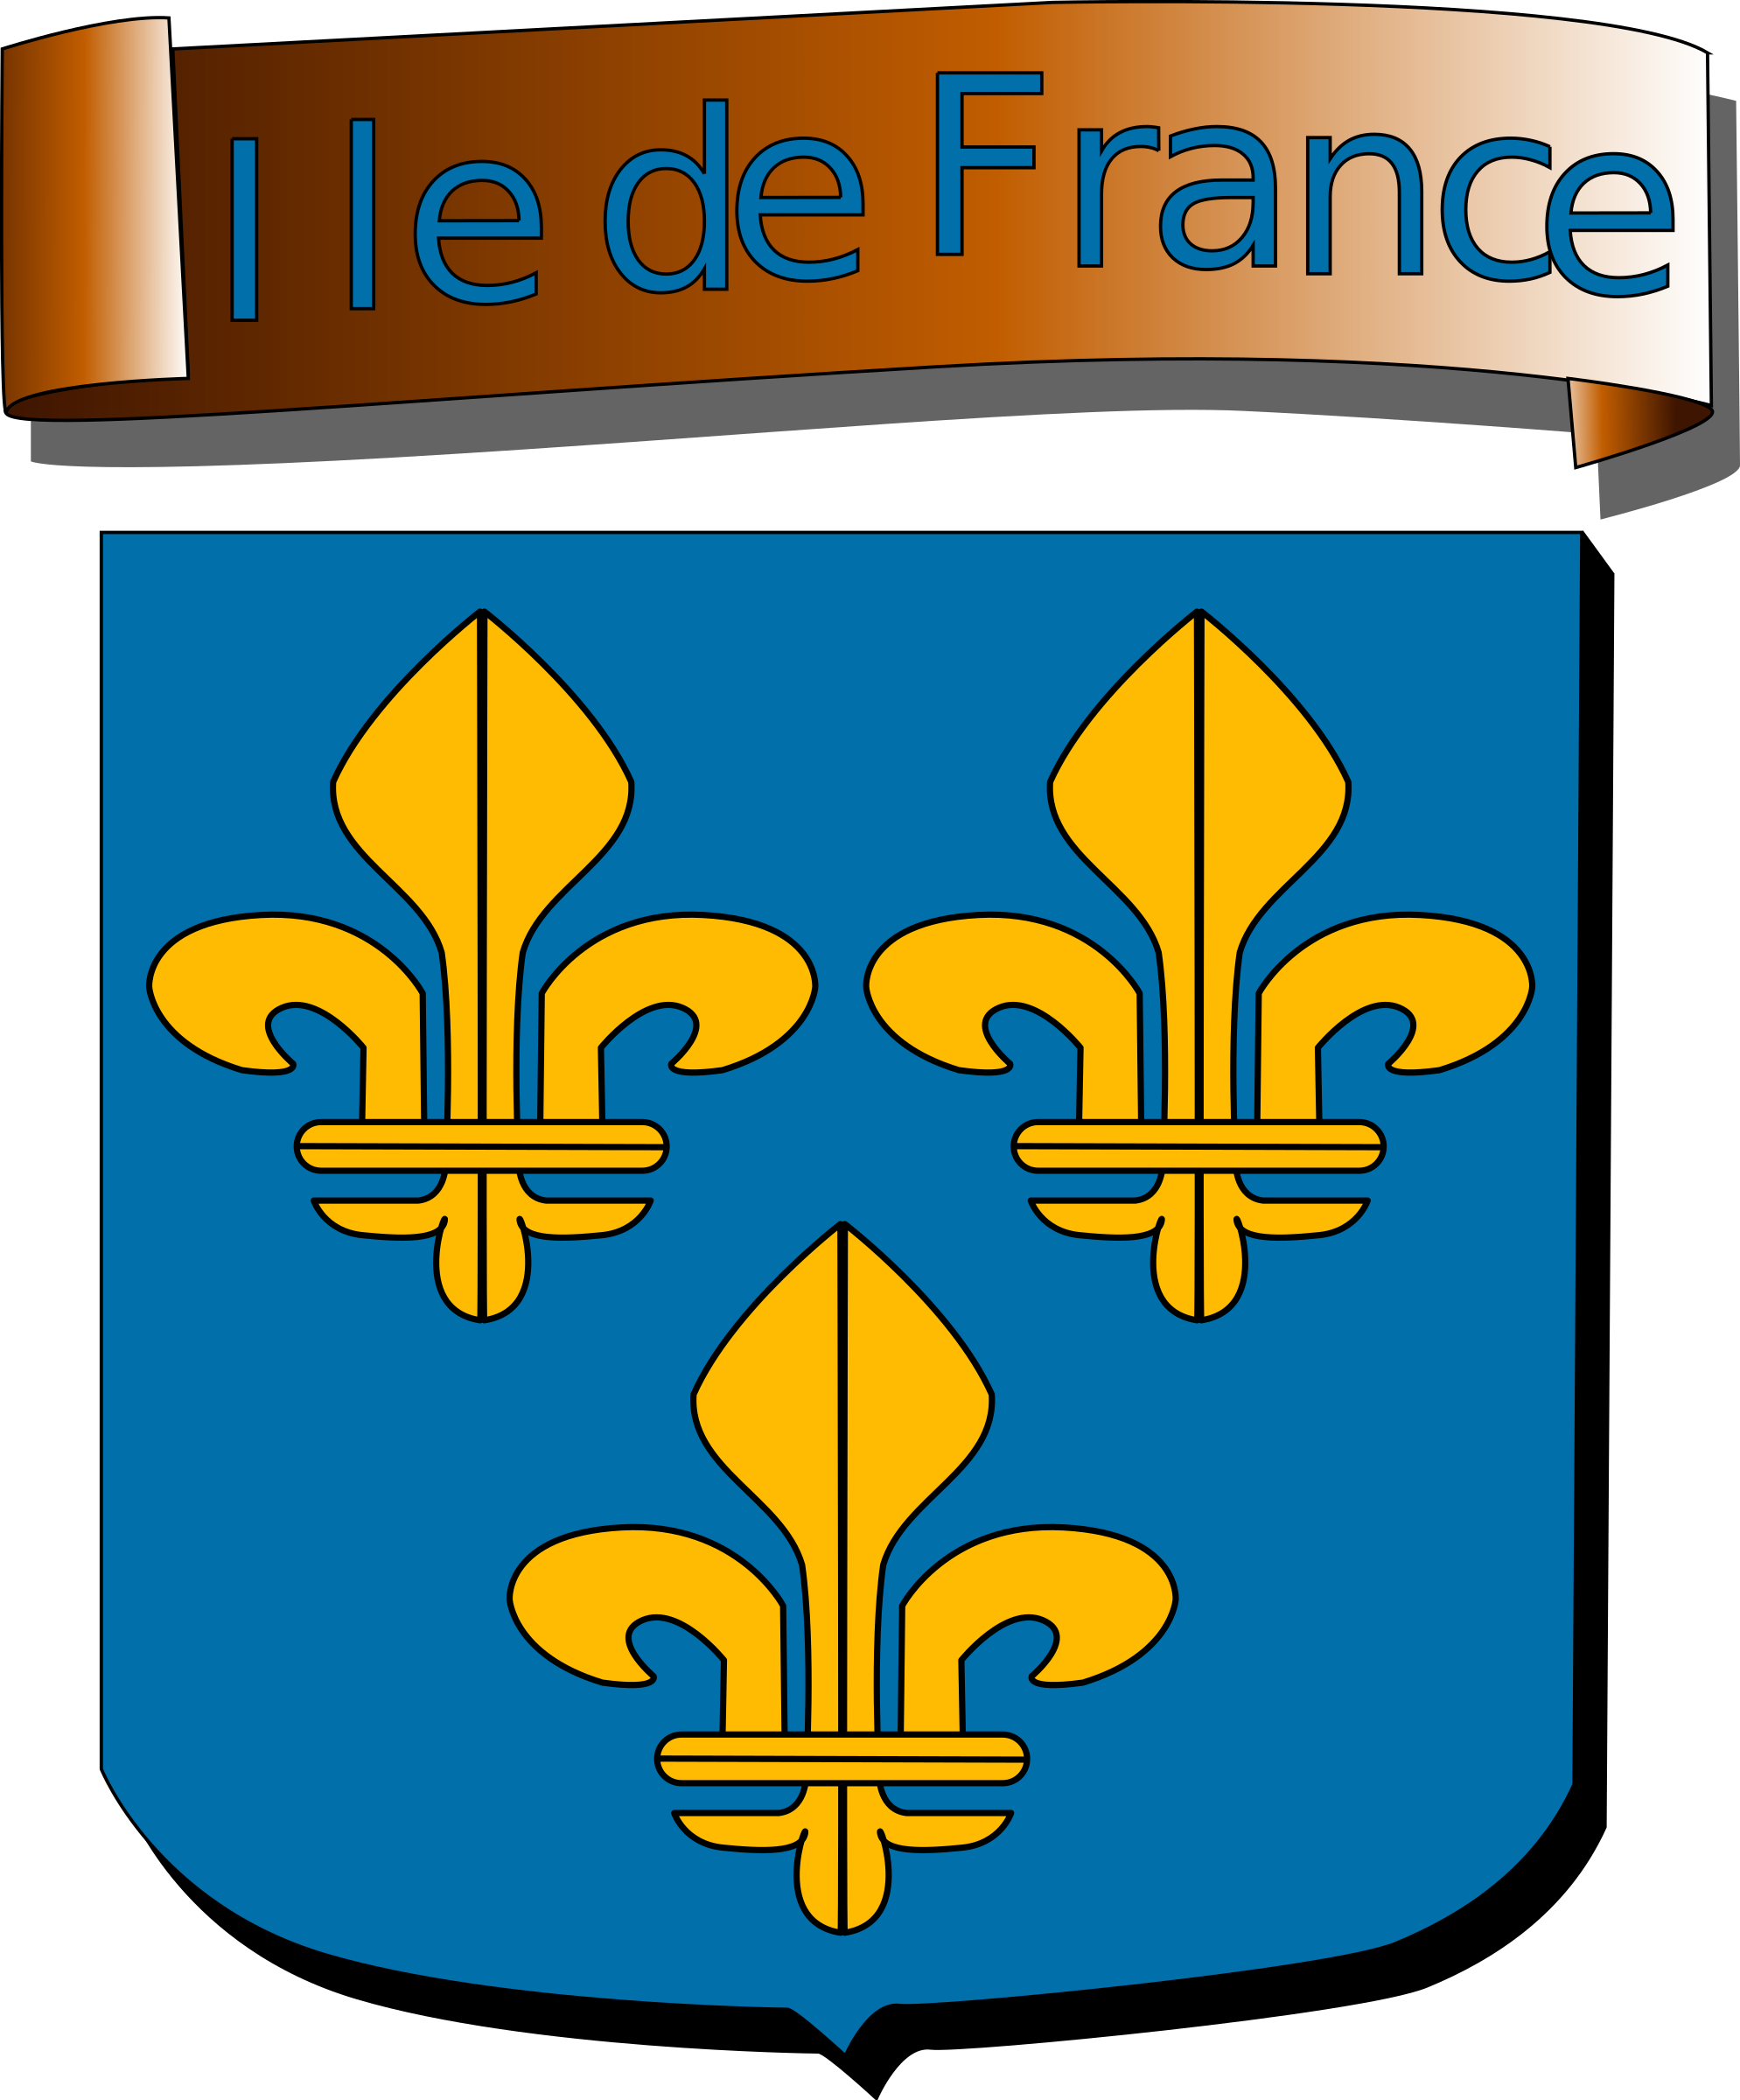 Ile de France - coat of arms by Anonymous